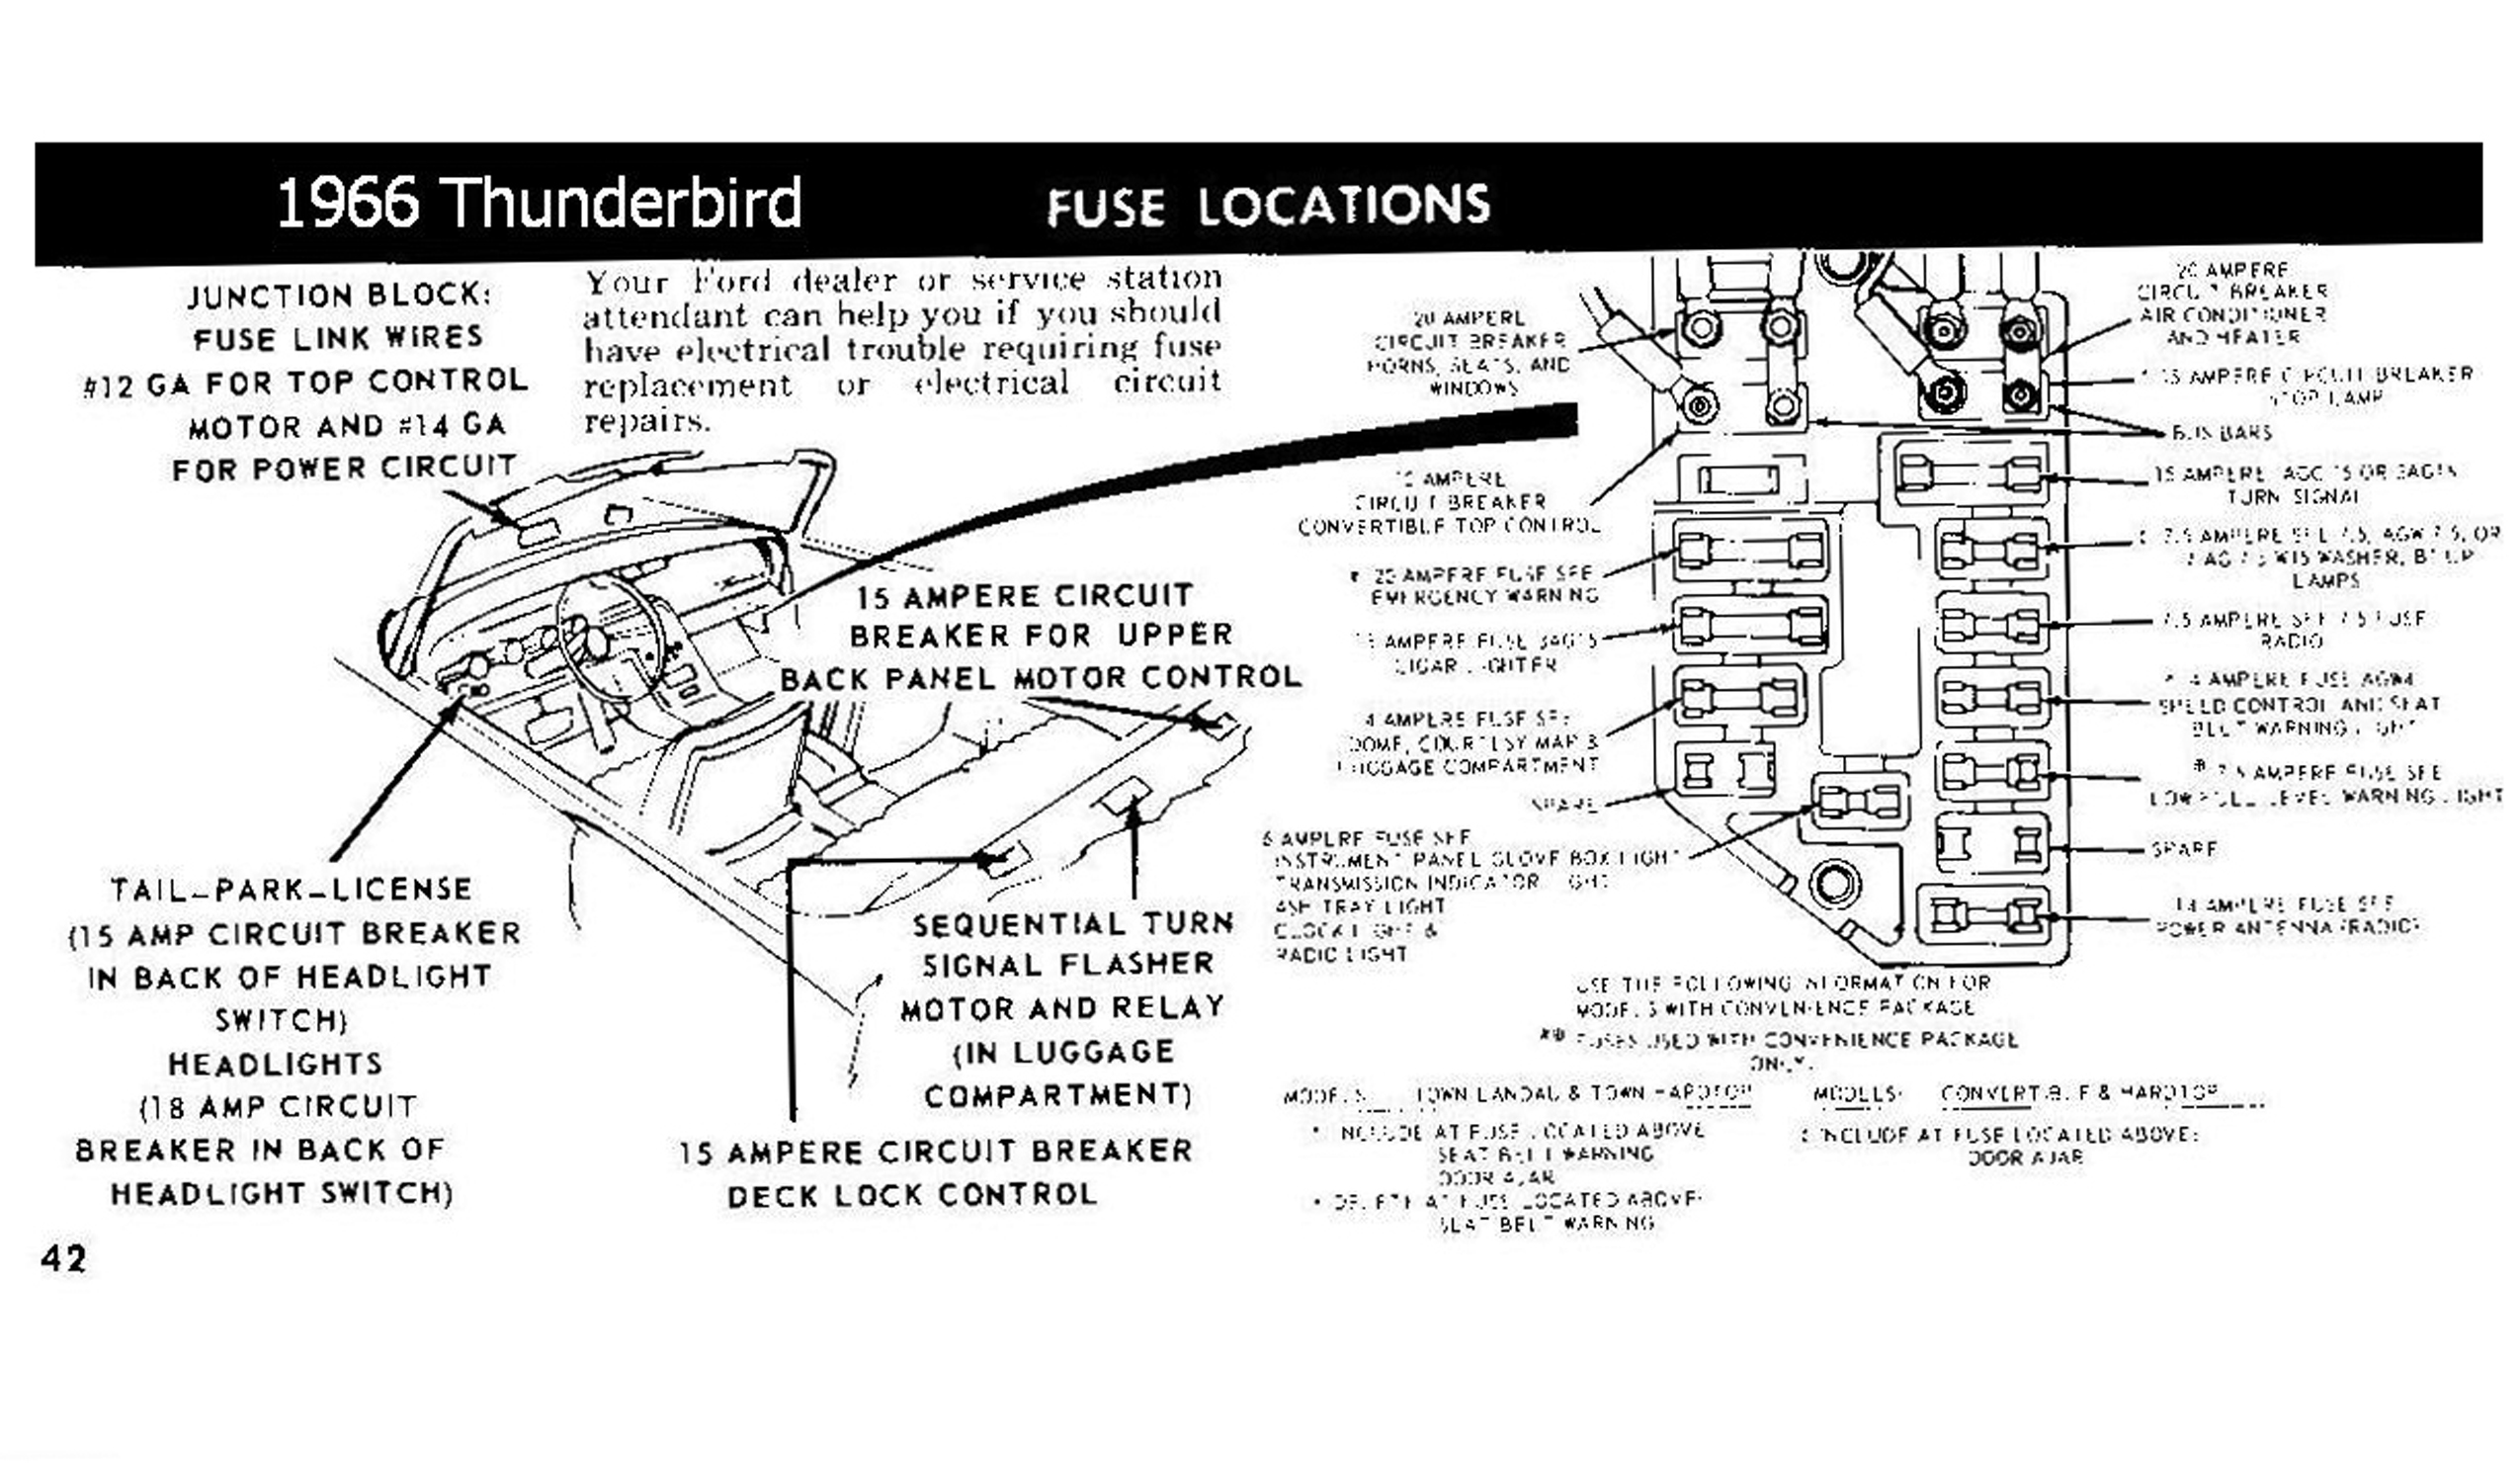 1955 Thunderbird Fuse Box Location : 34 Wiring Diagram